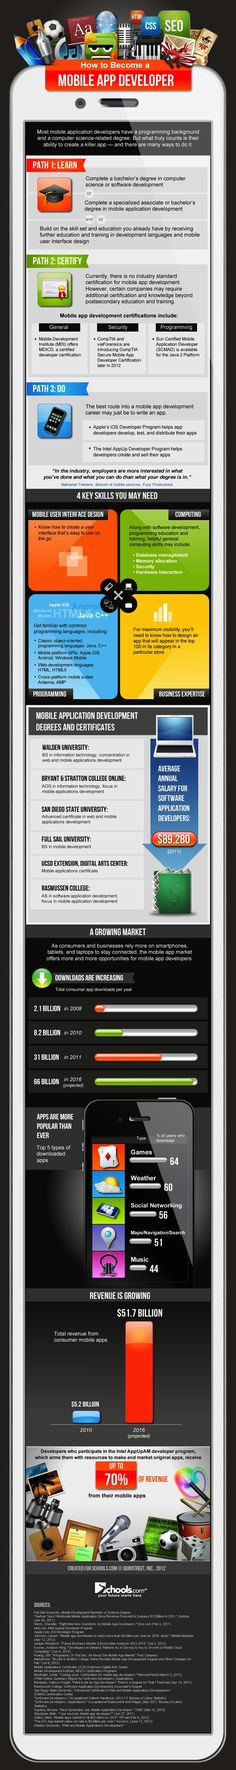 How To Become A Mobile Apps Developer [Infographic]